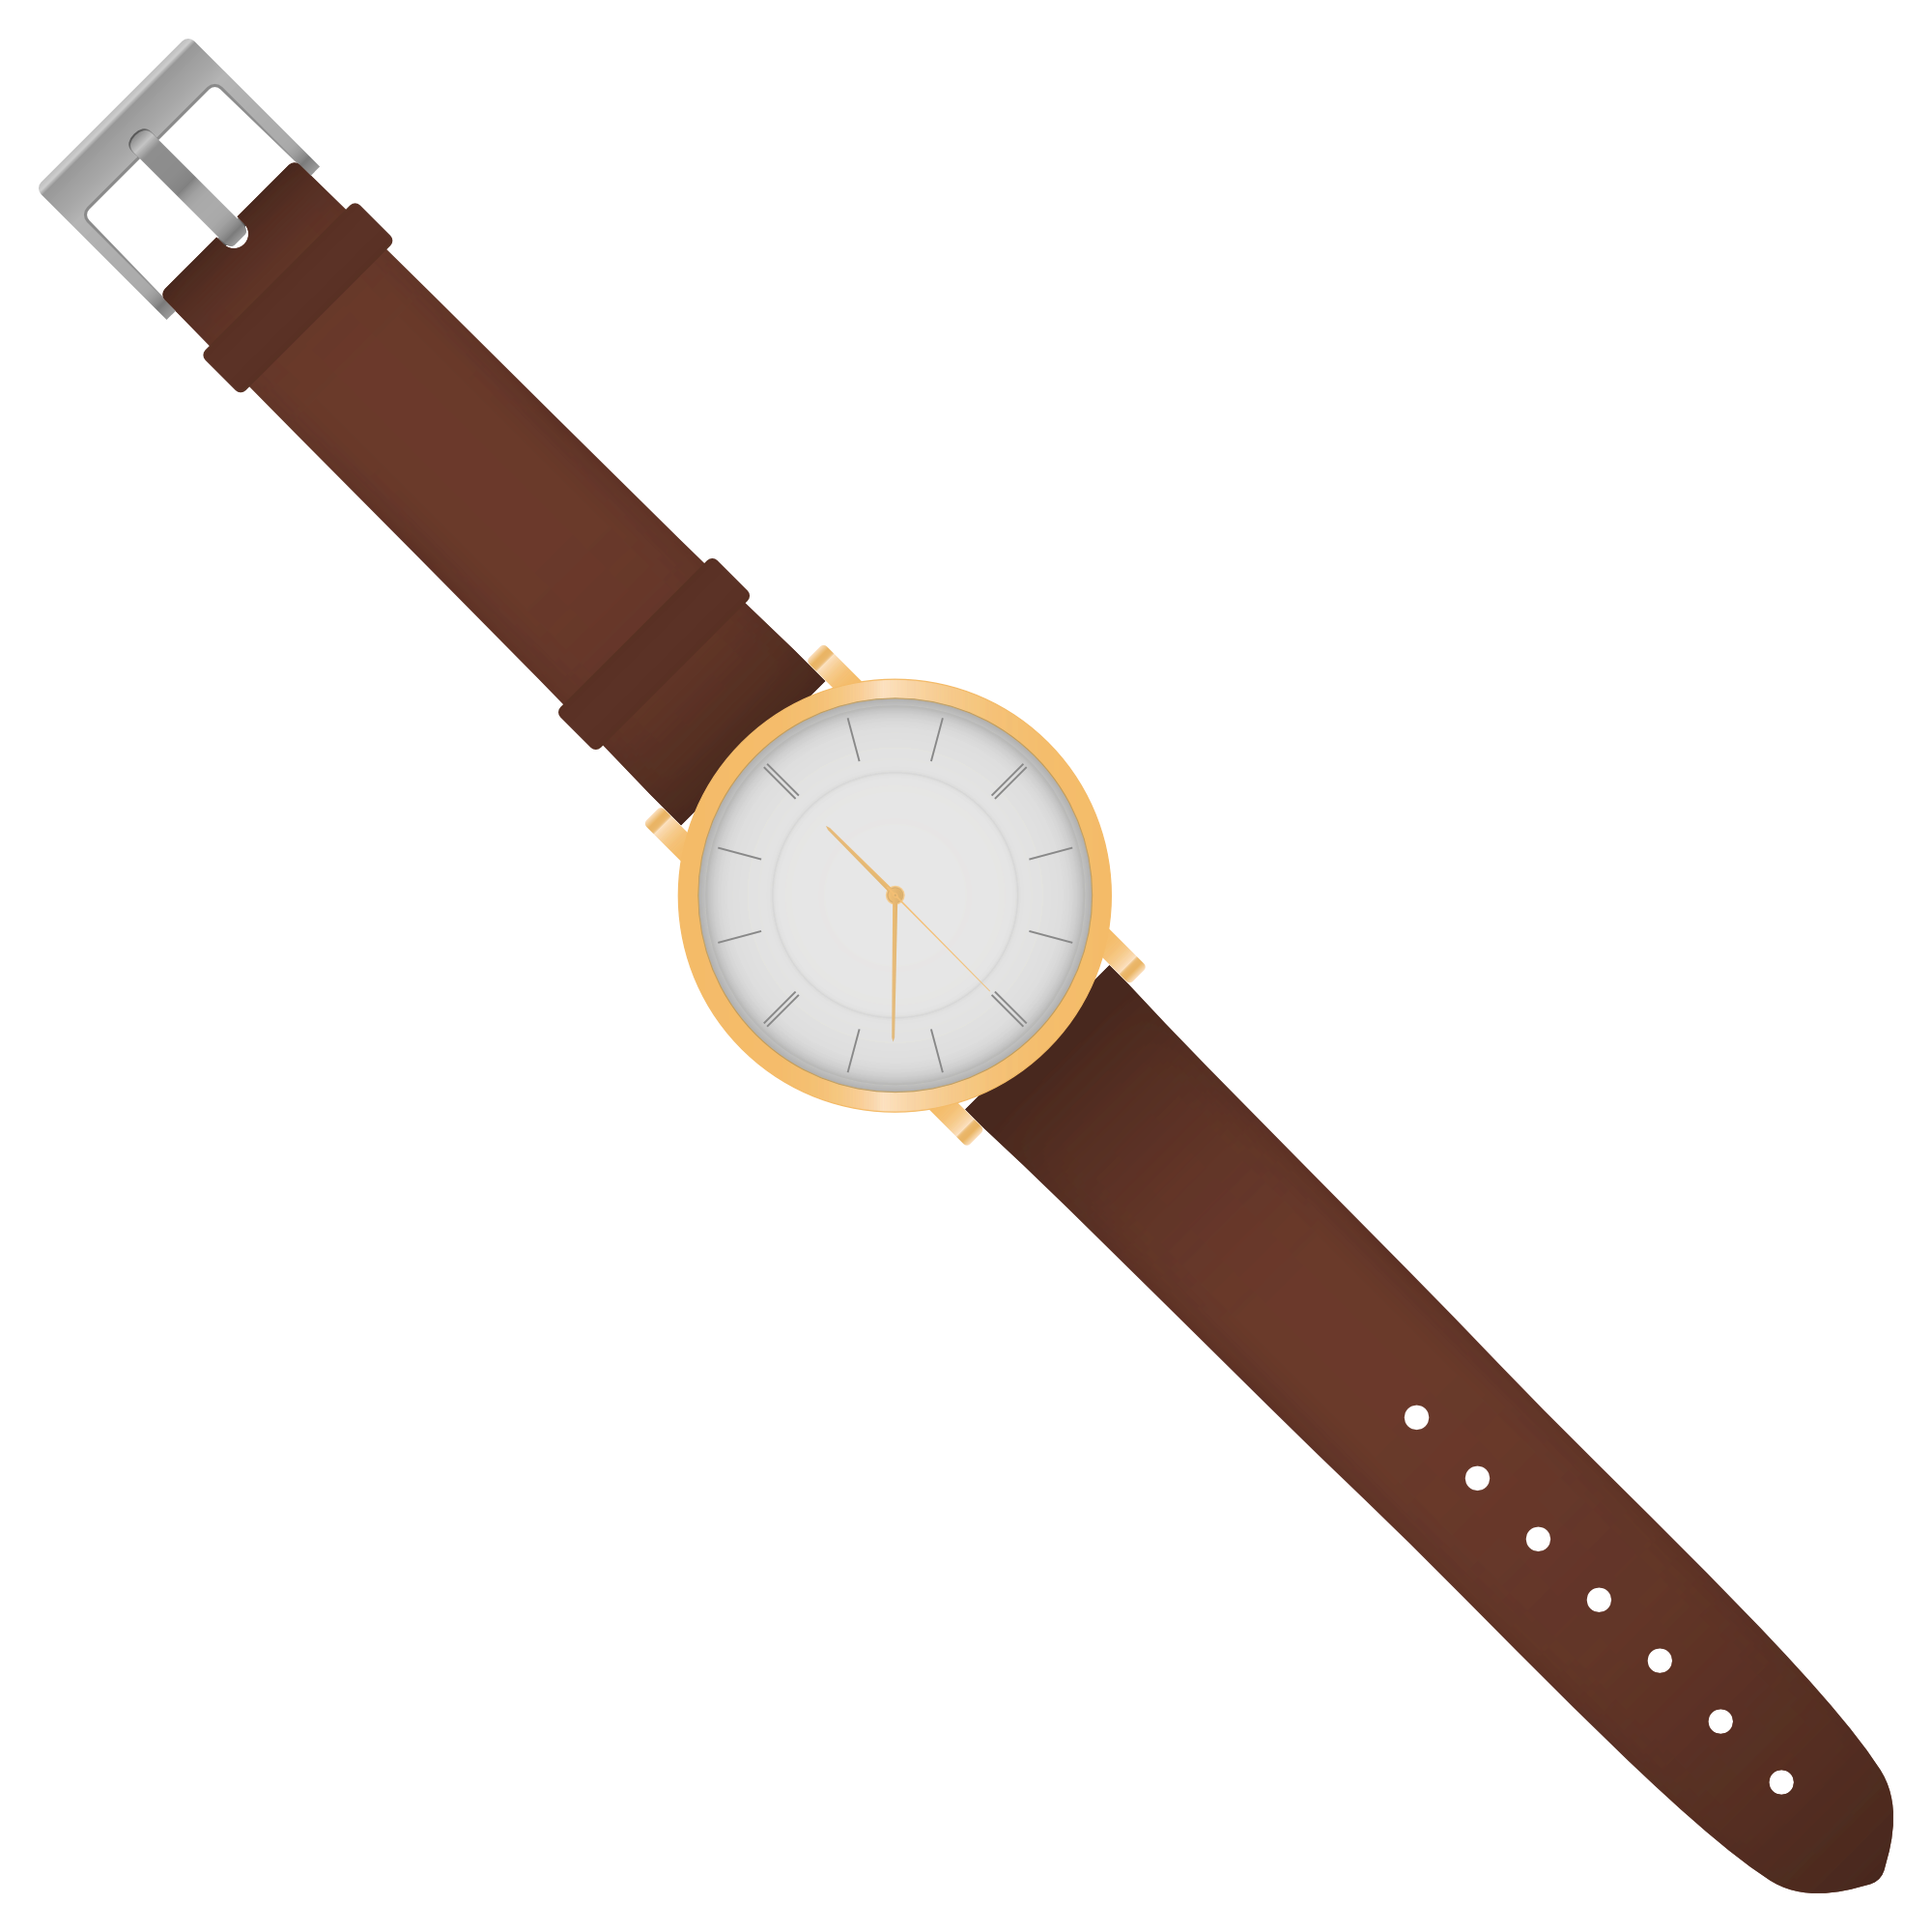 watch vector png transparent image pngpix #18667